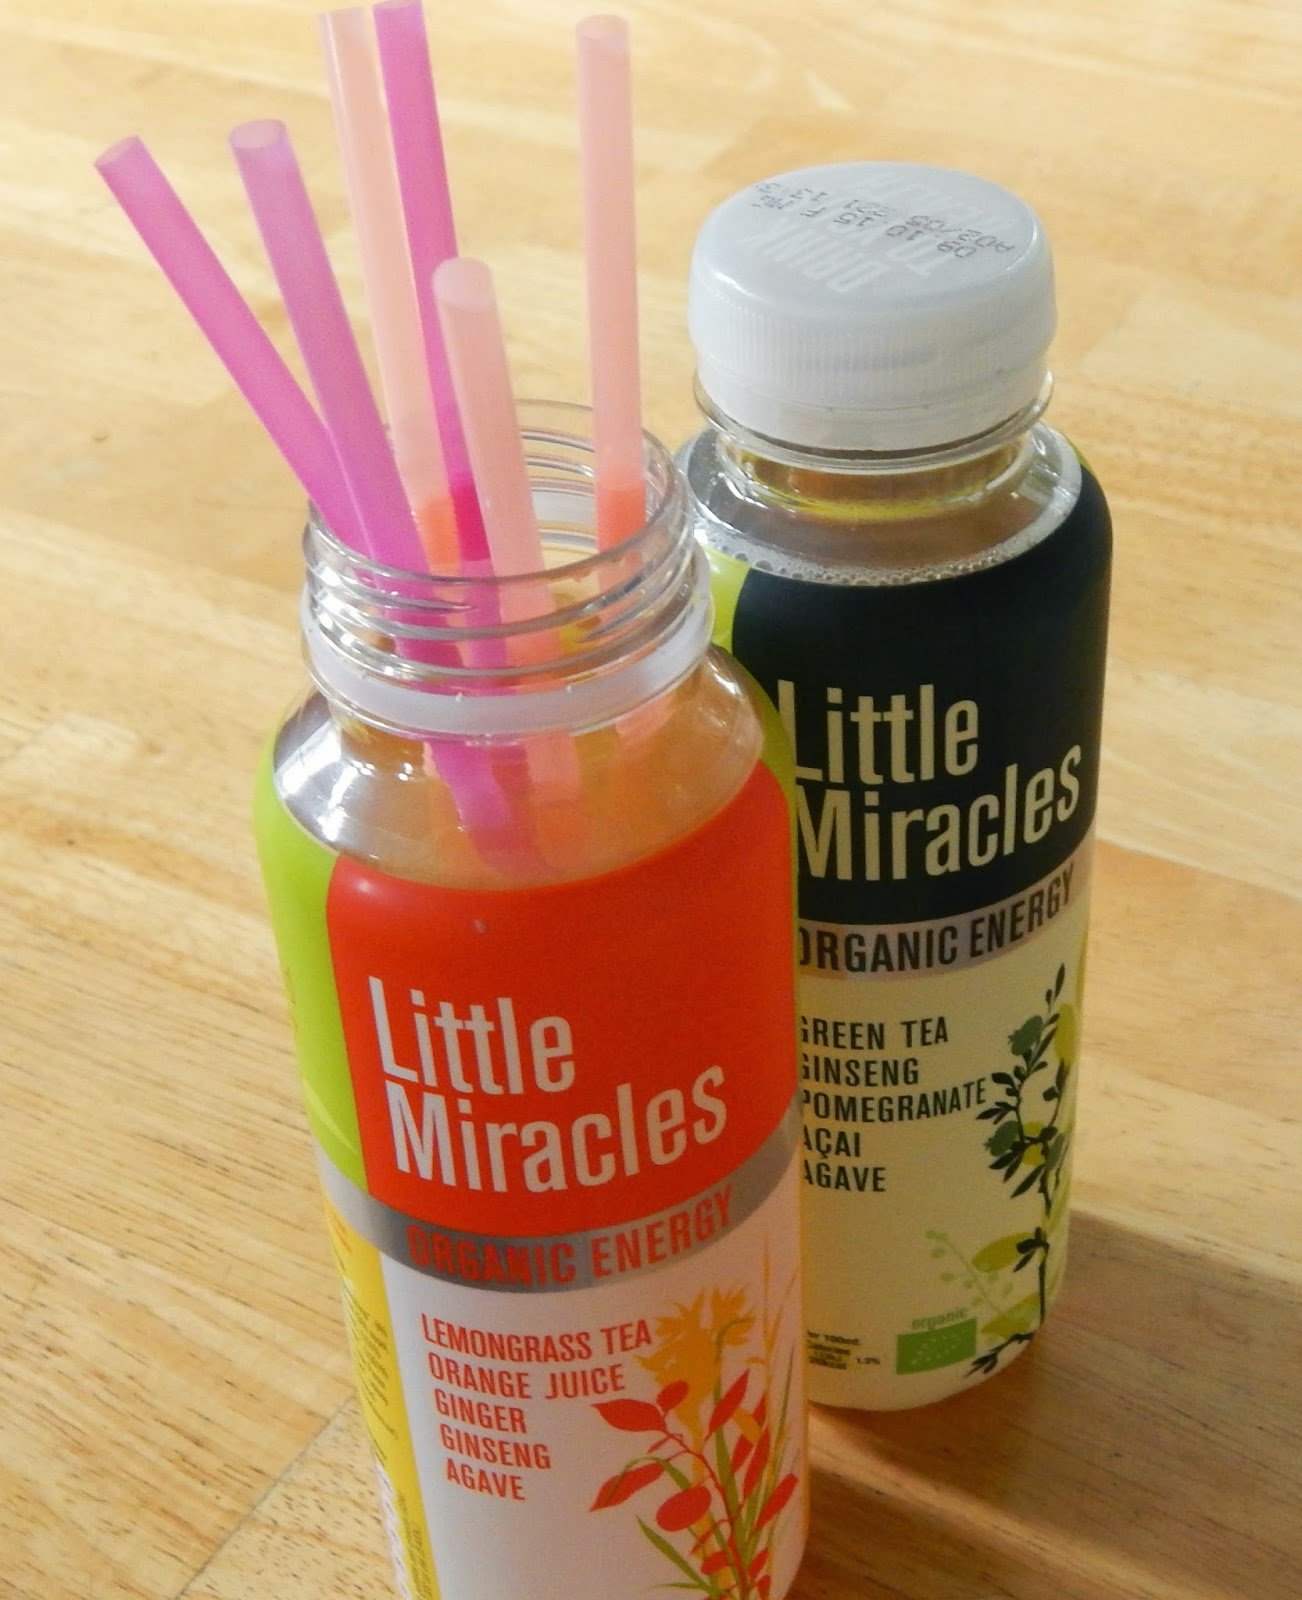 Little Miracles Drink